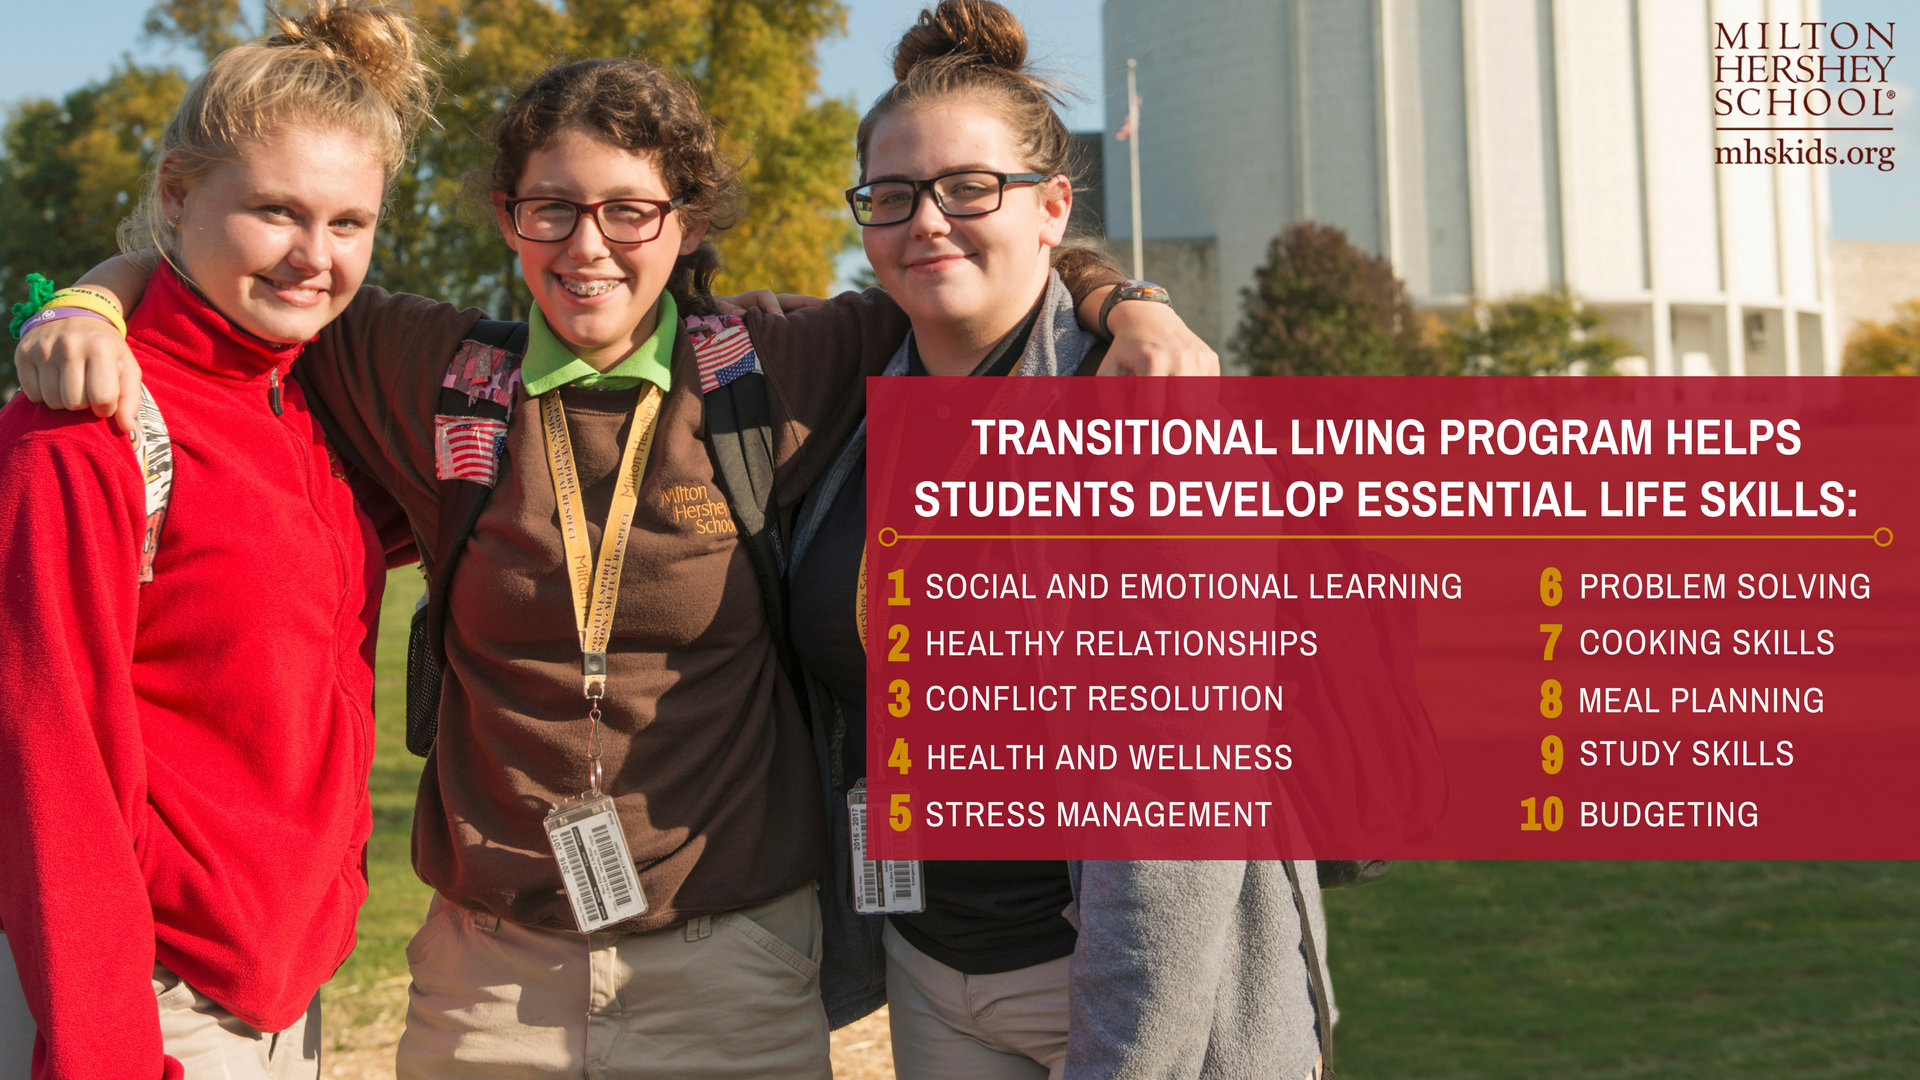 Transitional living program highlights.